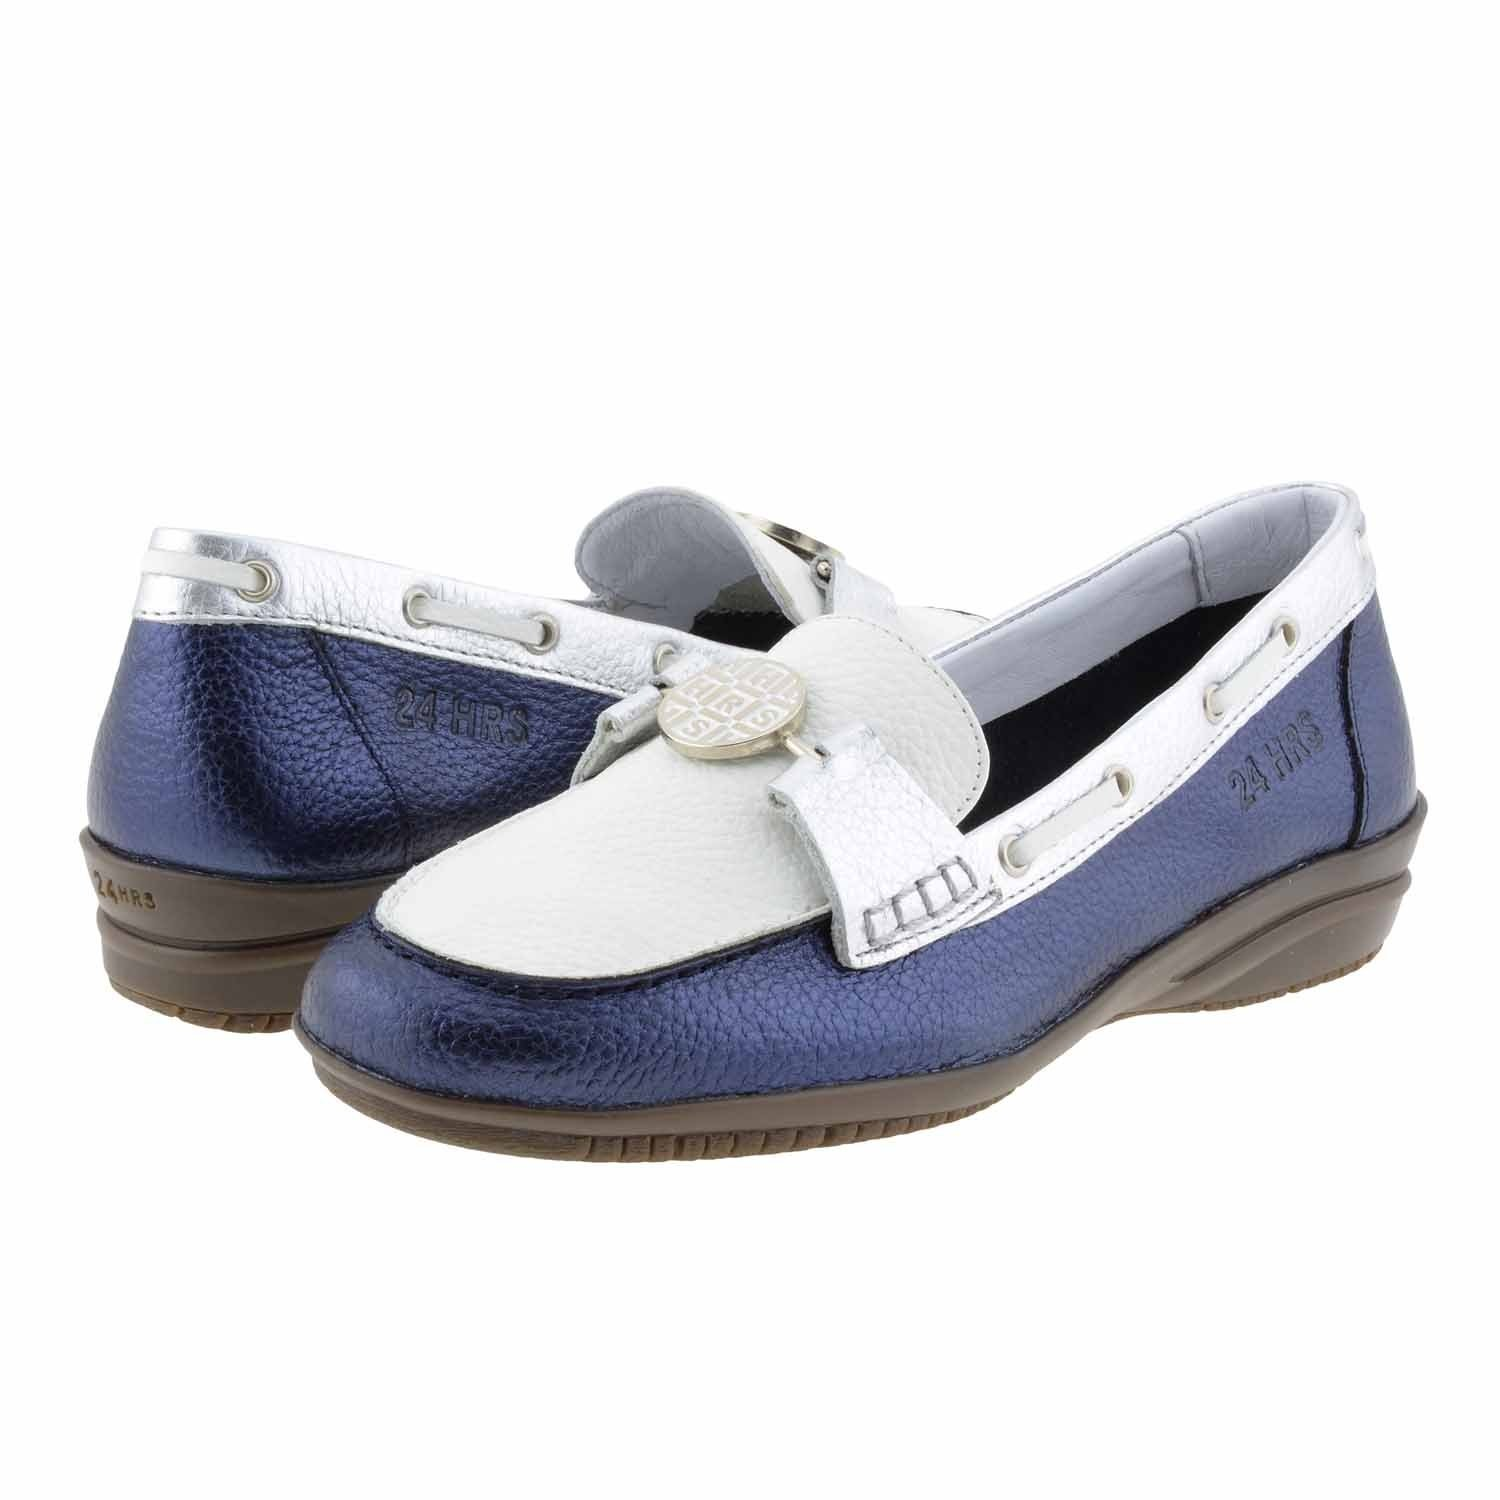 Mocasines piel 23158 de 24 Horas Talla: 40 Color: MARINO: Amazon.es: Zapatos y complementos